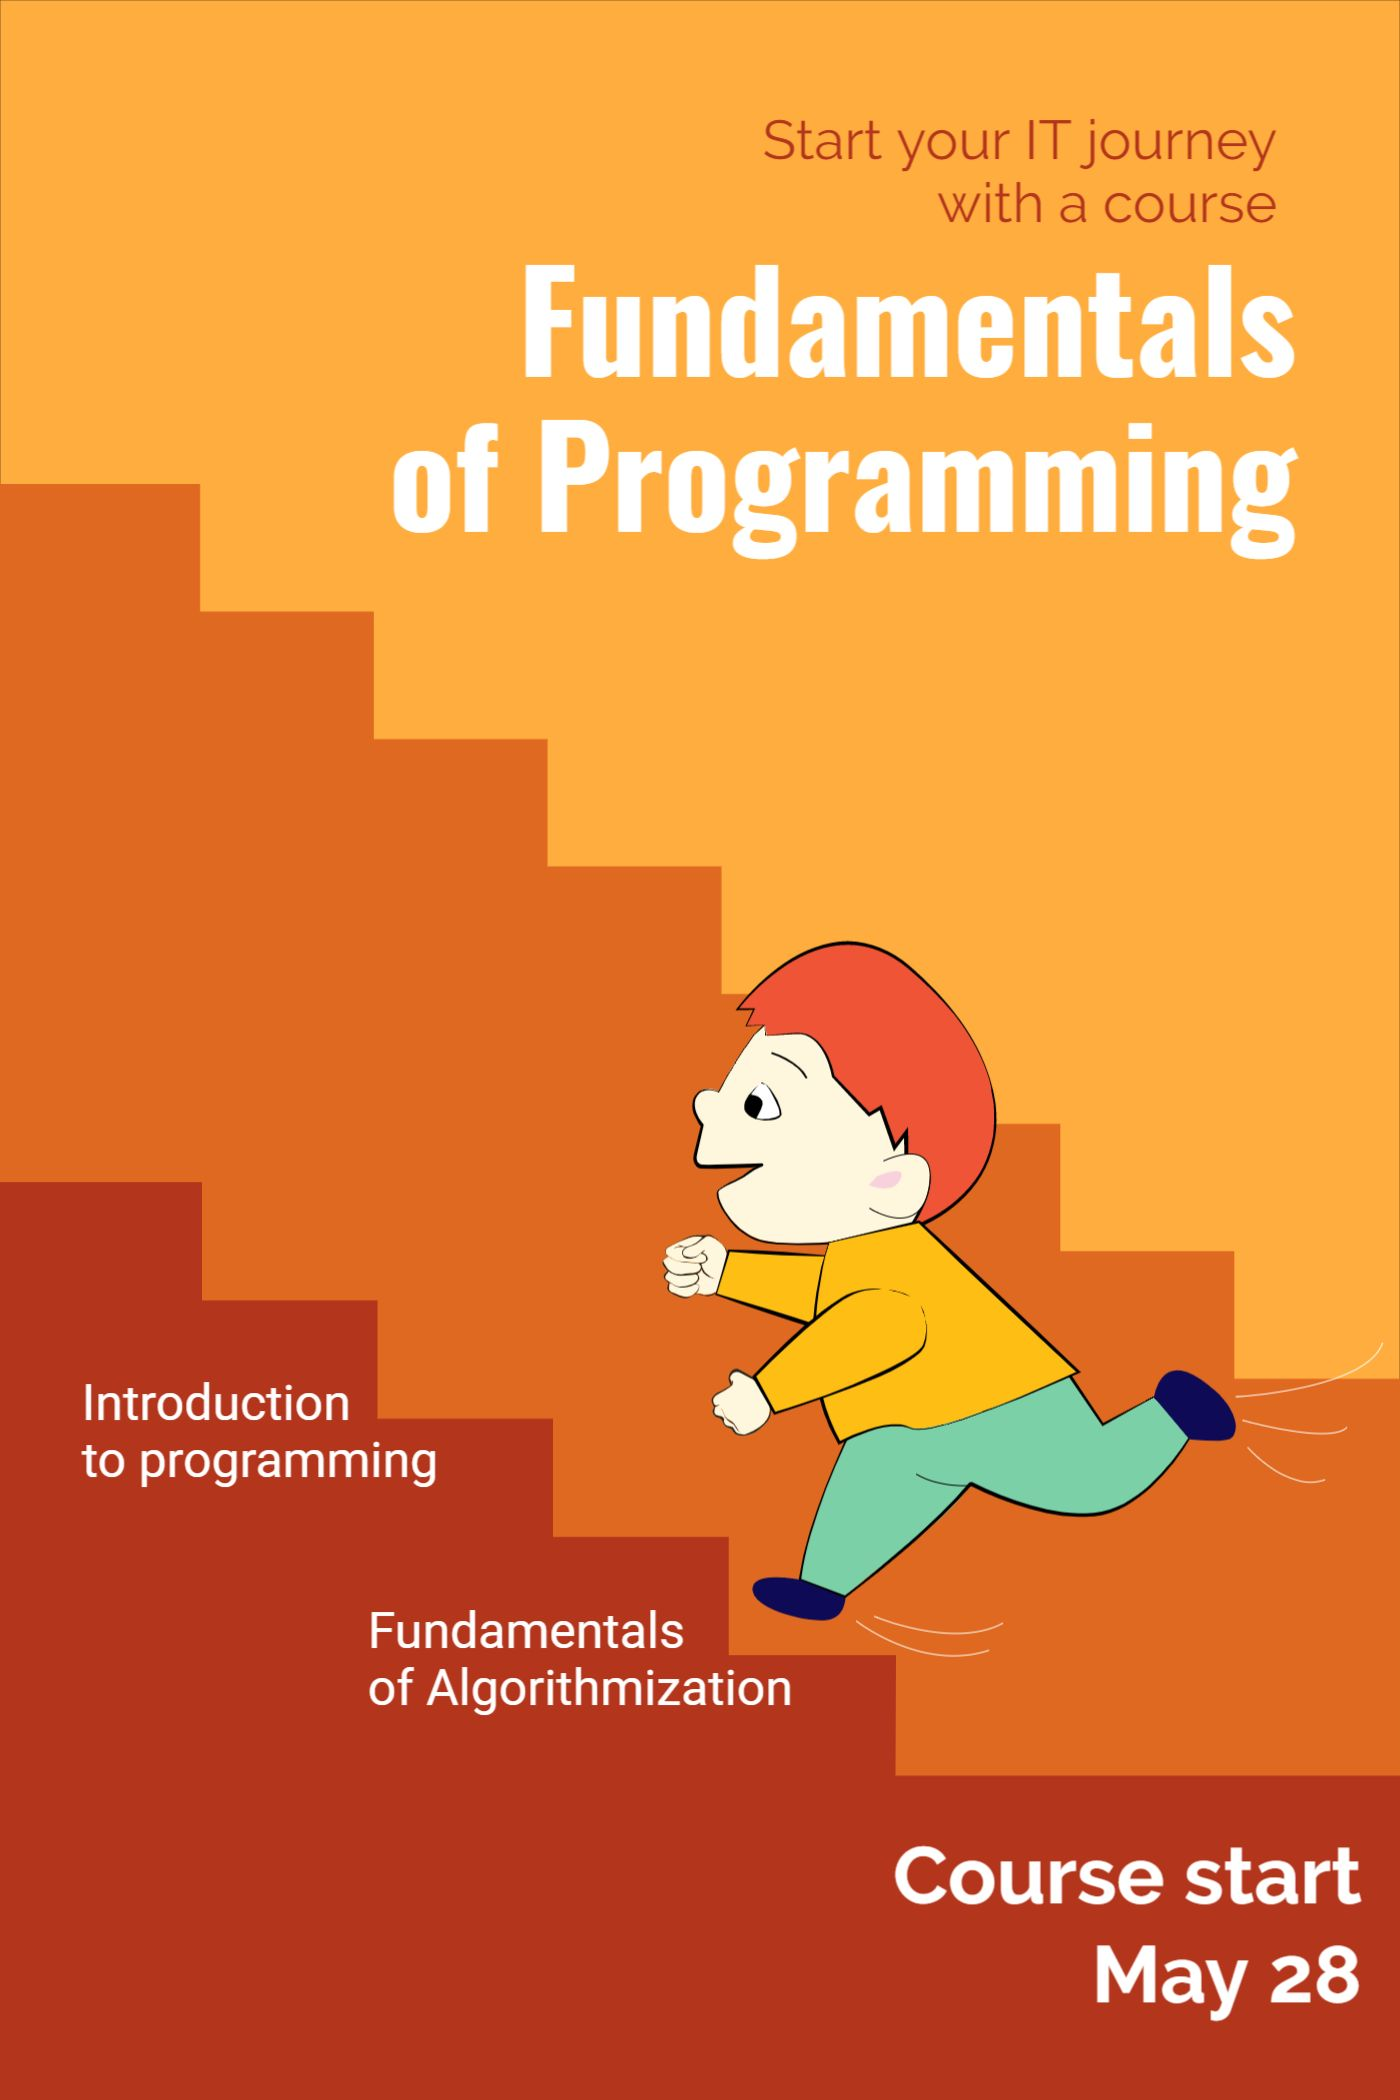 Cover Template for Programming Courses